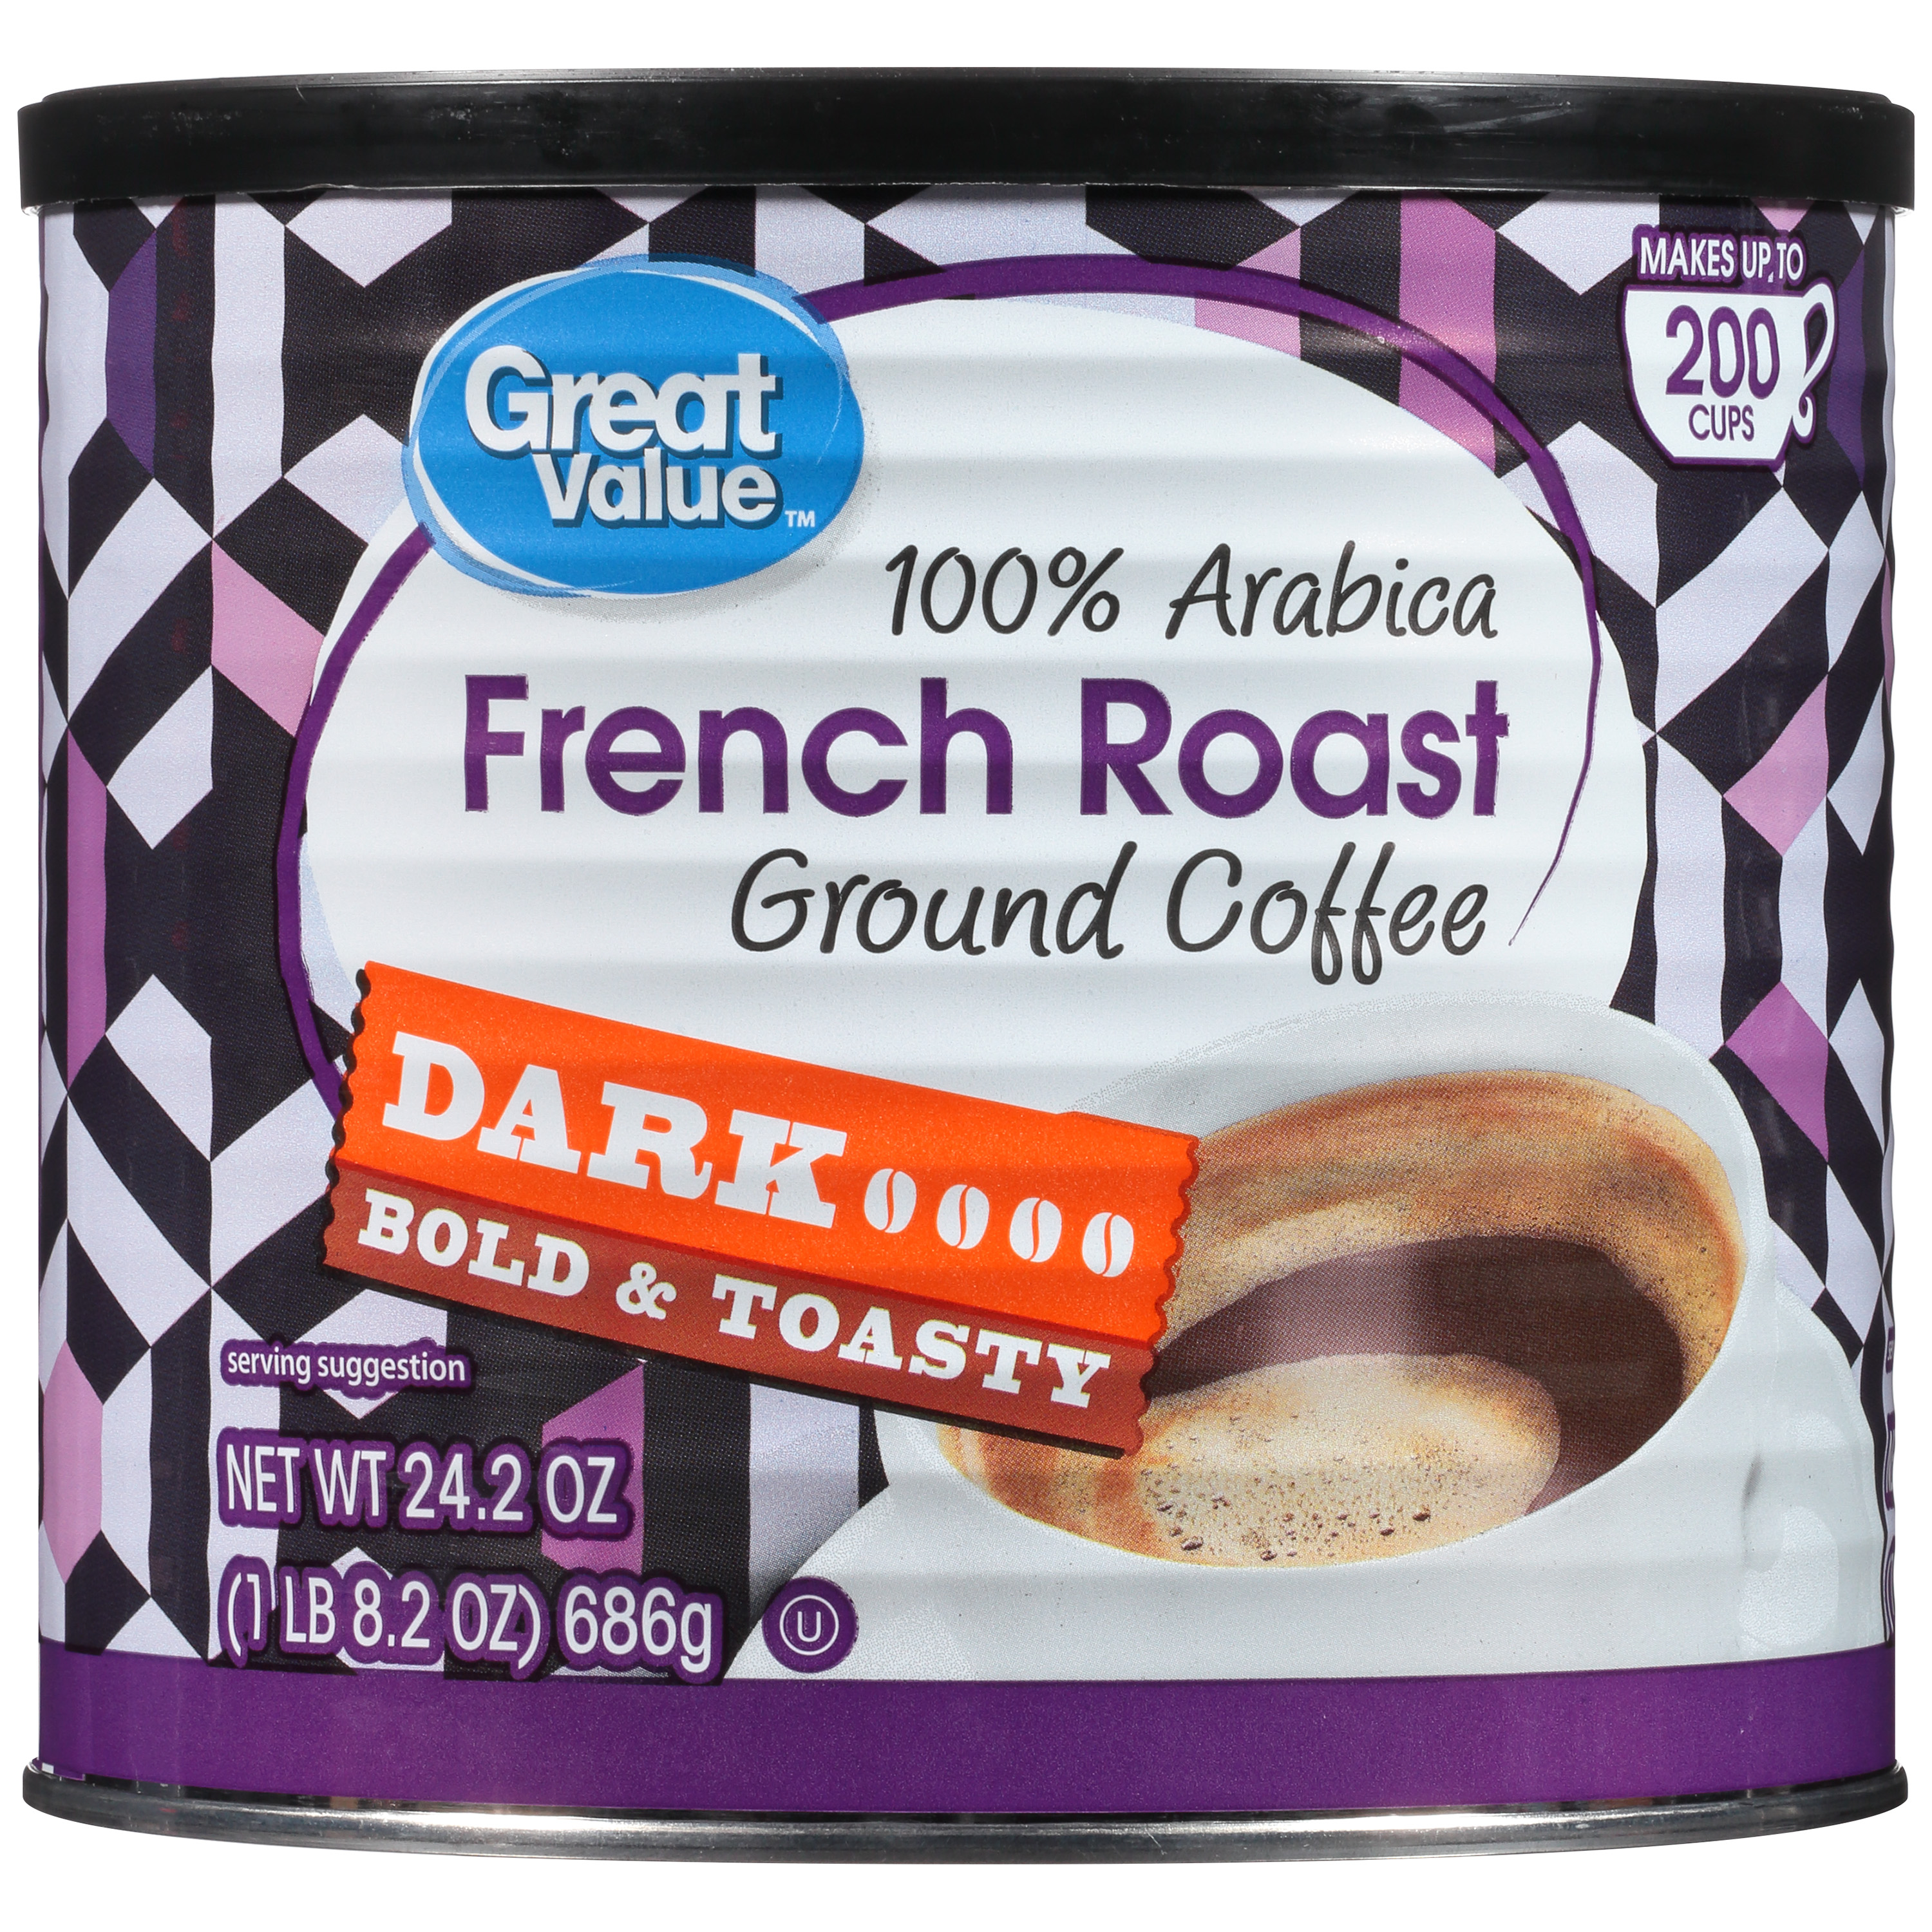 Great Value French Roast Ground Coffee, Dark Roast, 24.2 oz